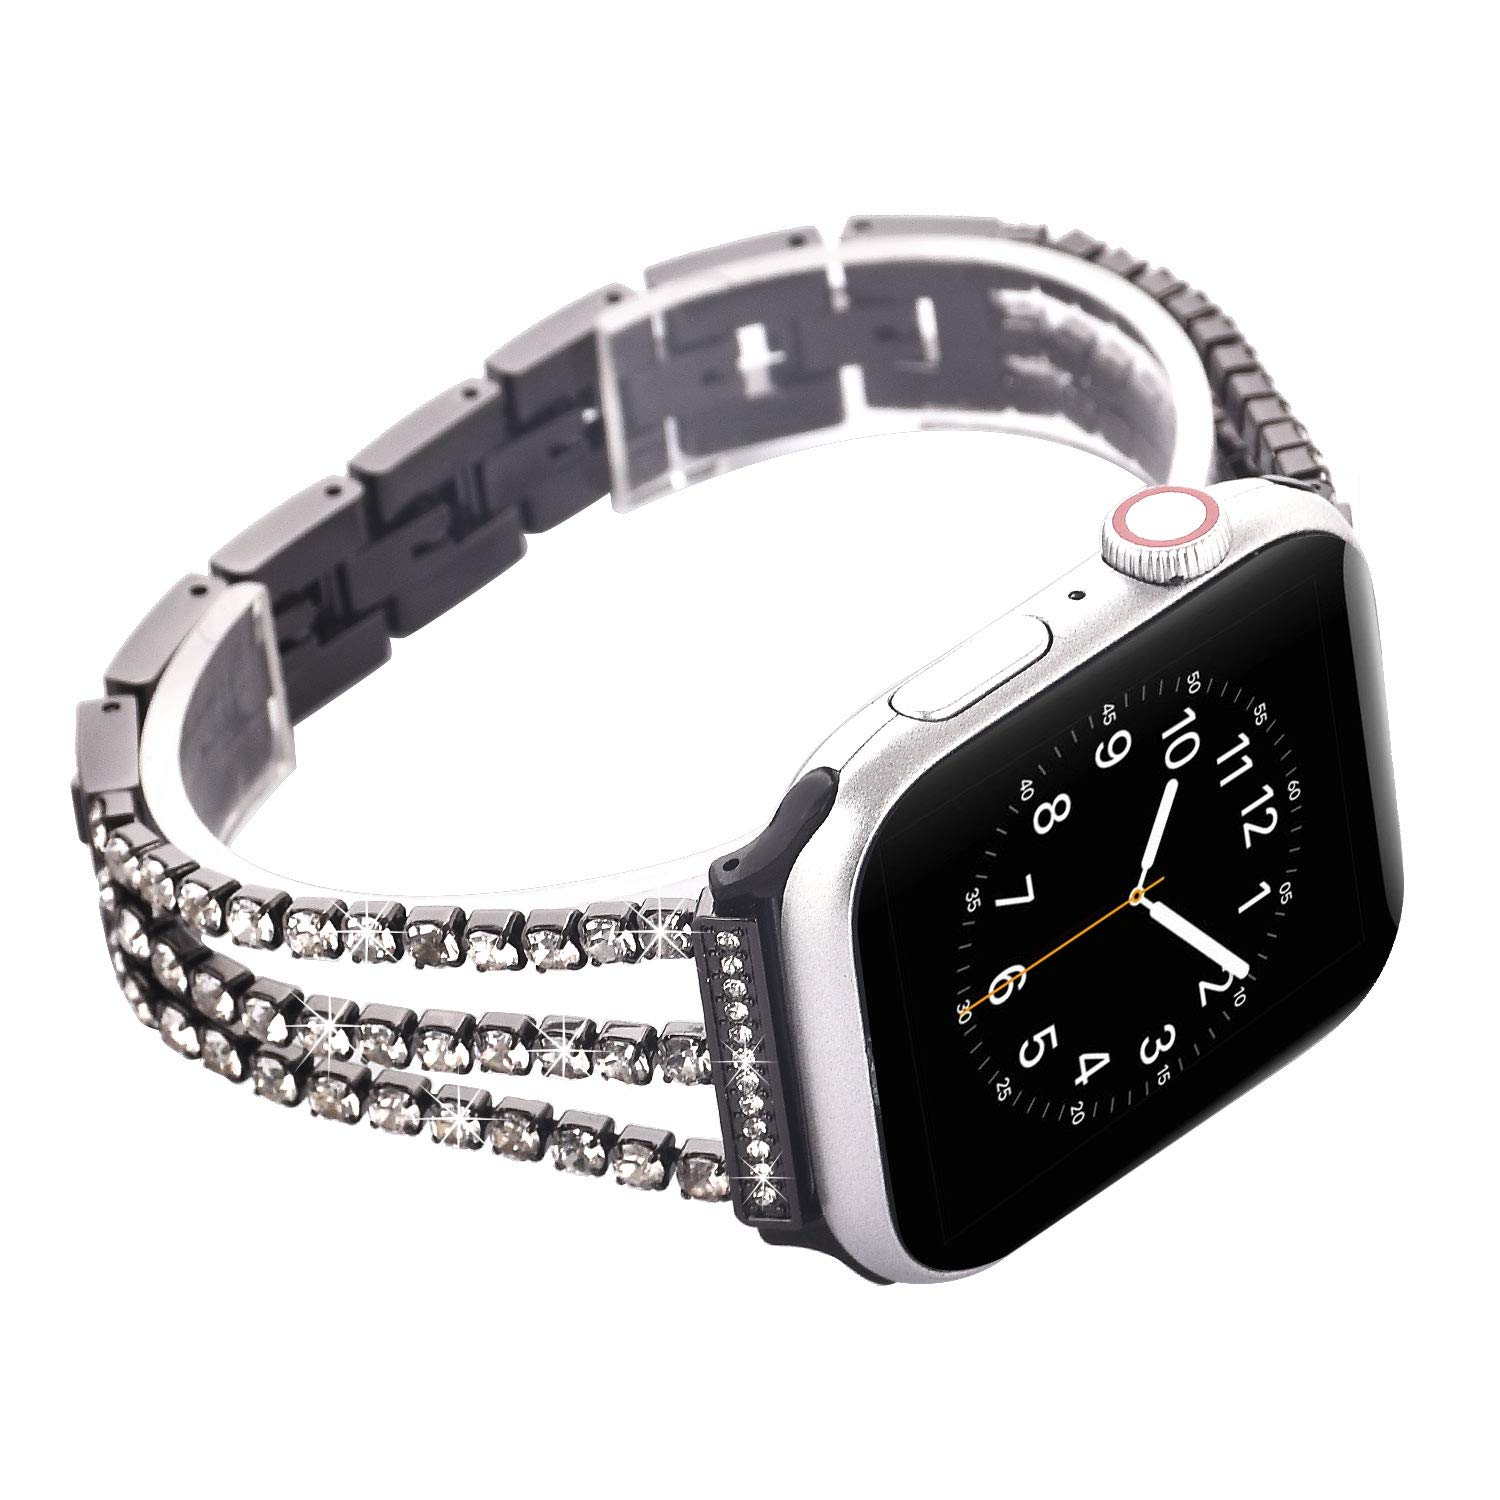 Watch Straps compatible Apple Watch 38mm/40mm,Women Glitter Stainless Steel Band,Black Bracelet with Folding clasps Replacement Wristband for iWactch 40mm Series 4/3/2/1